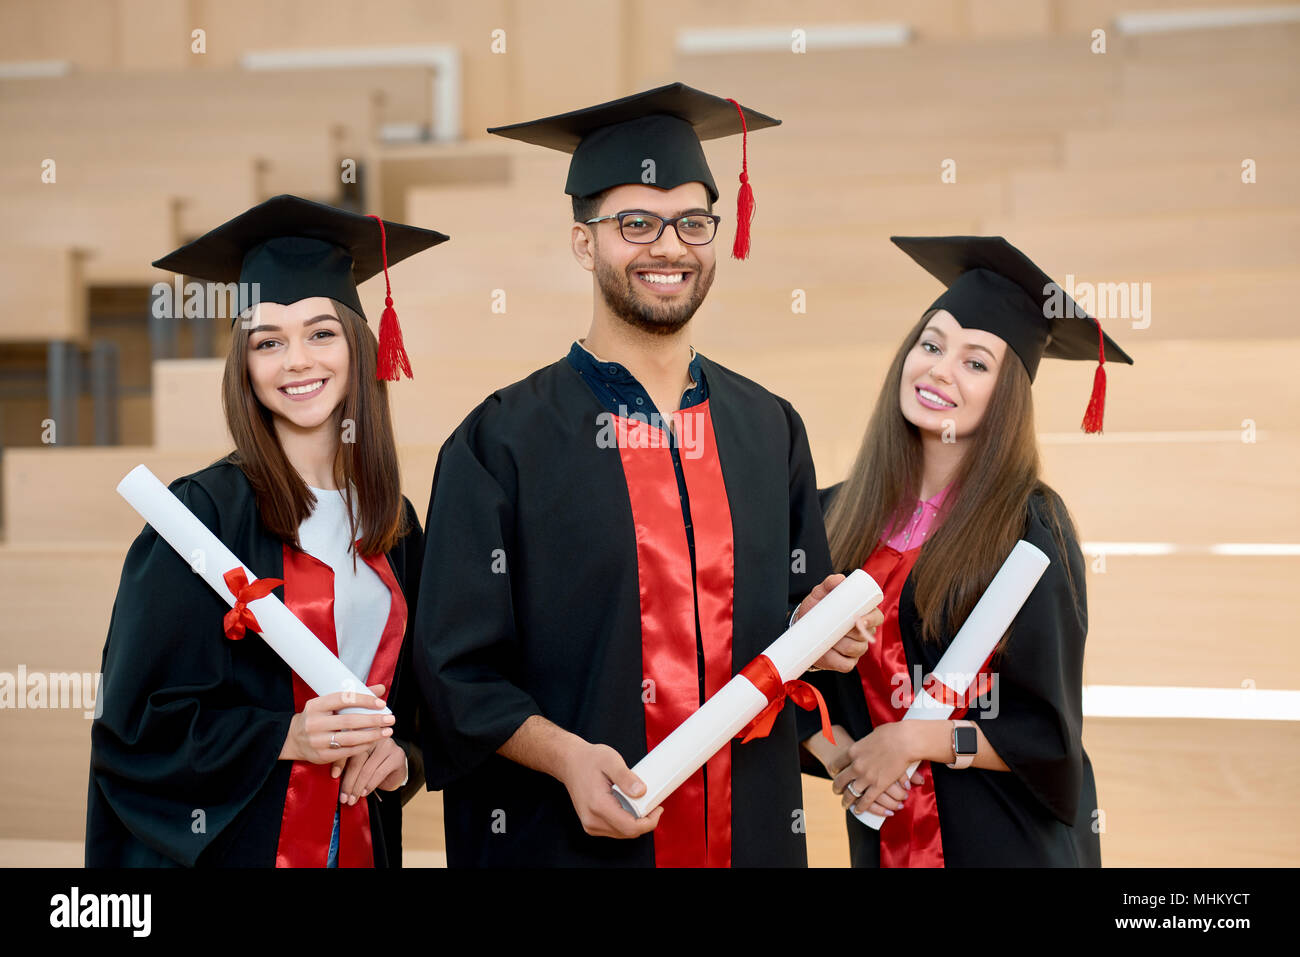 Smiling graduates keeping diplomas standing in spacy modern university classroom. Students wearing new black and red graduation gowns. Feeling happy, satisfied, laughing. Having brilliant future. - Stock Image